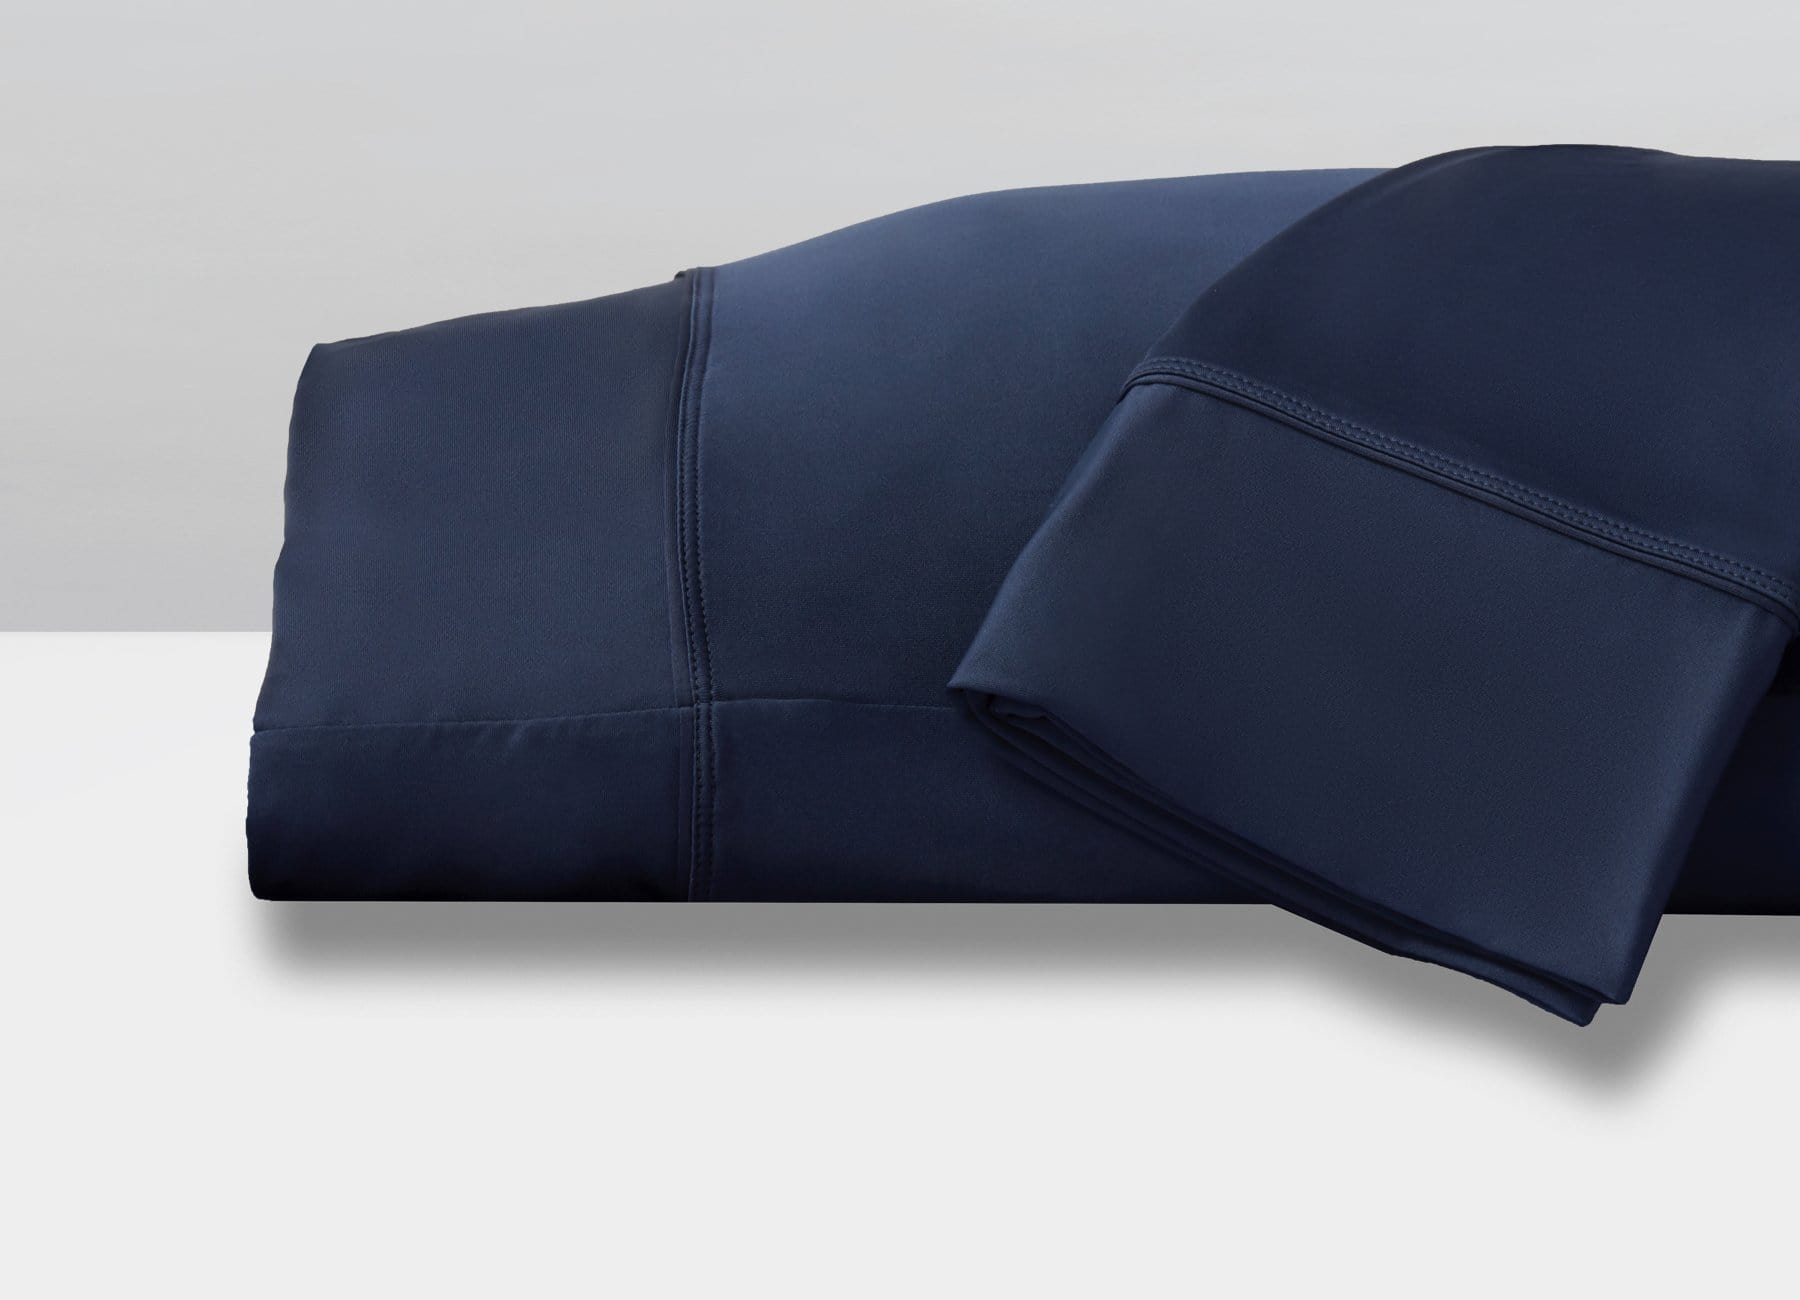 ORIGINAL PERFORMANCE Pillowcases shown in navy #choose-your-color_navy